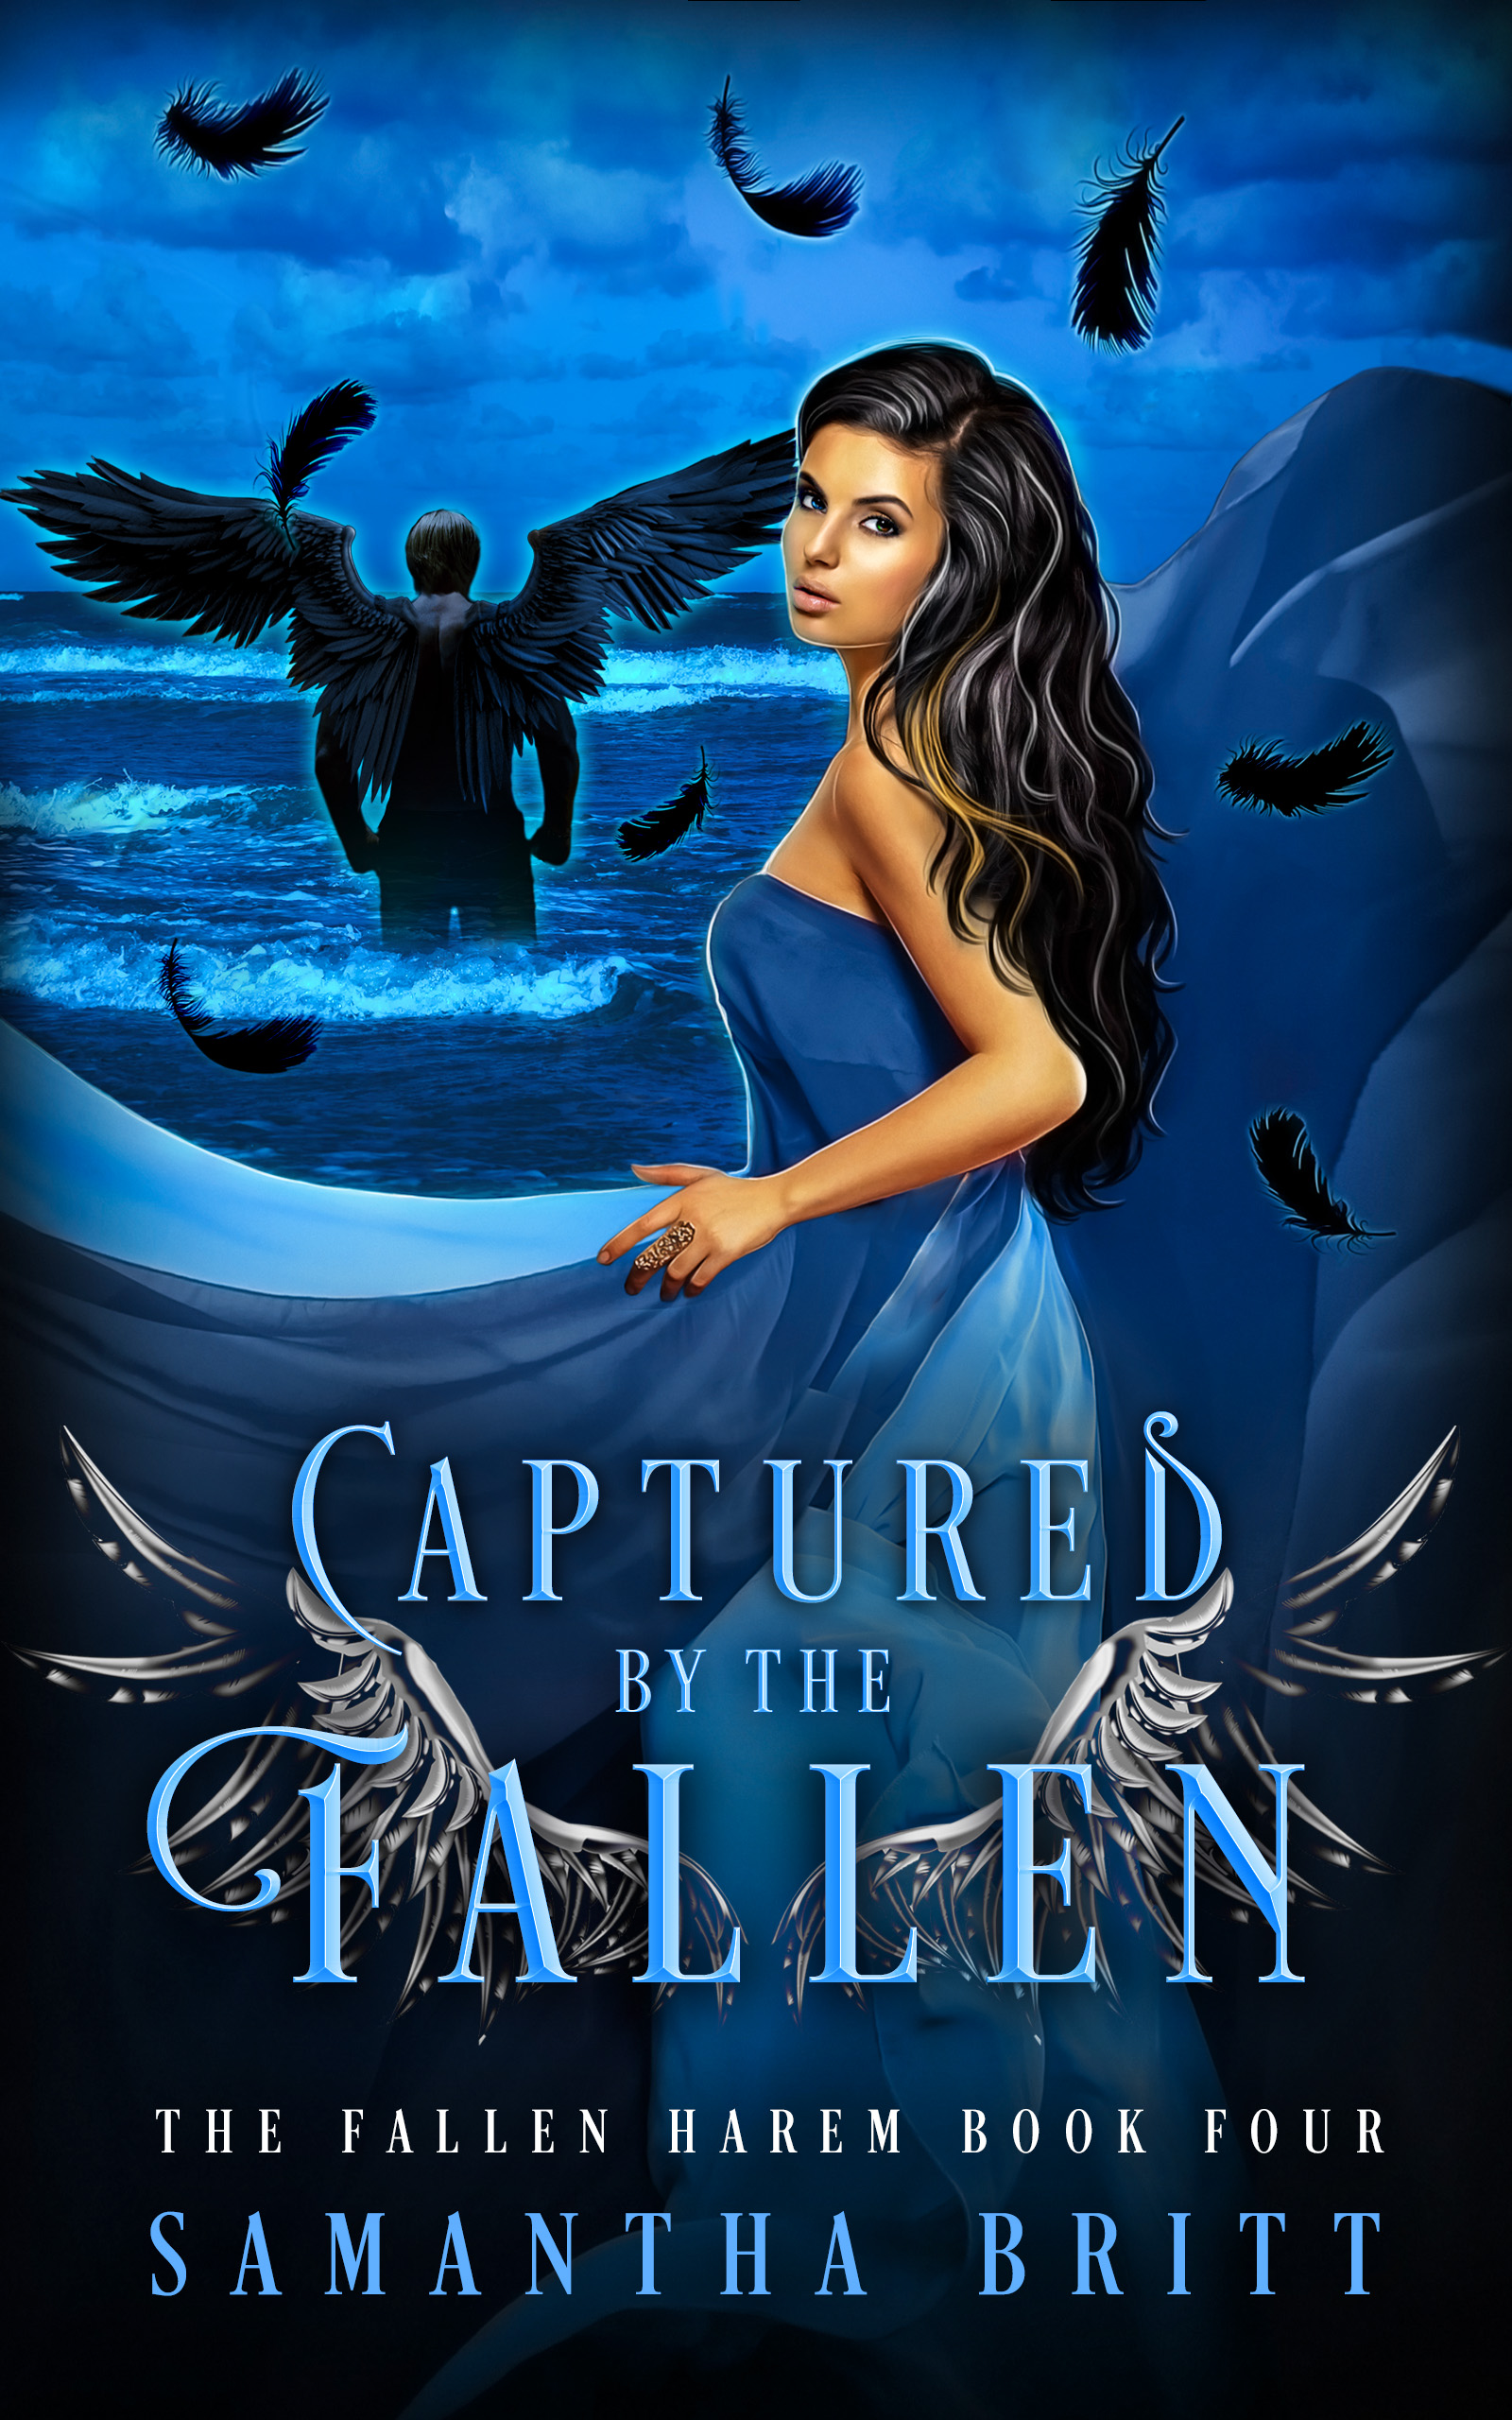 Captured by the Fallen - Book 4